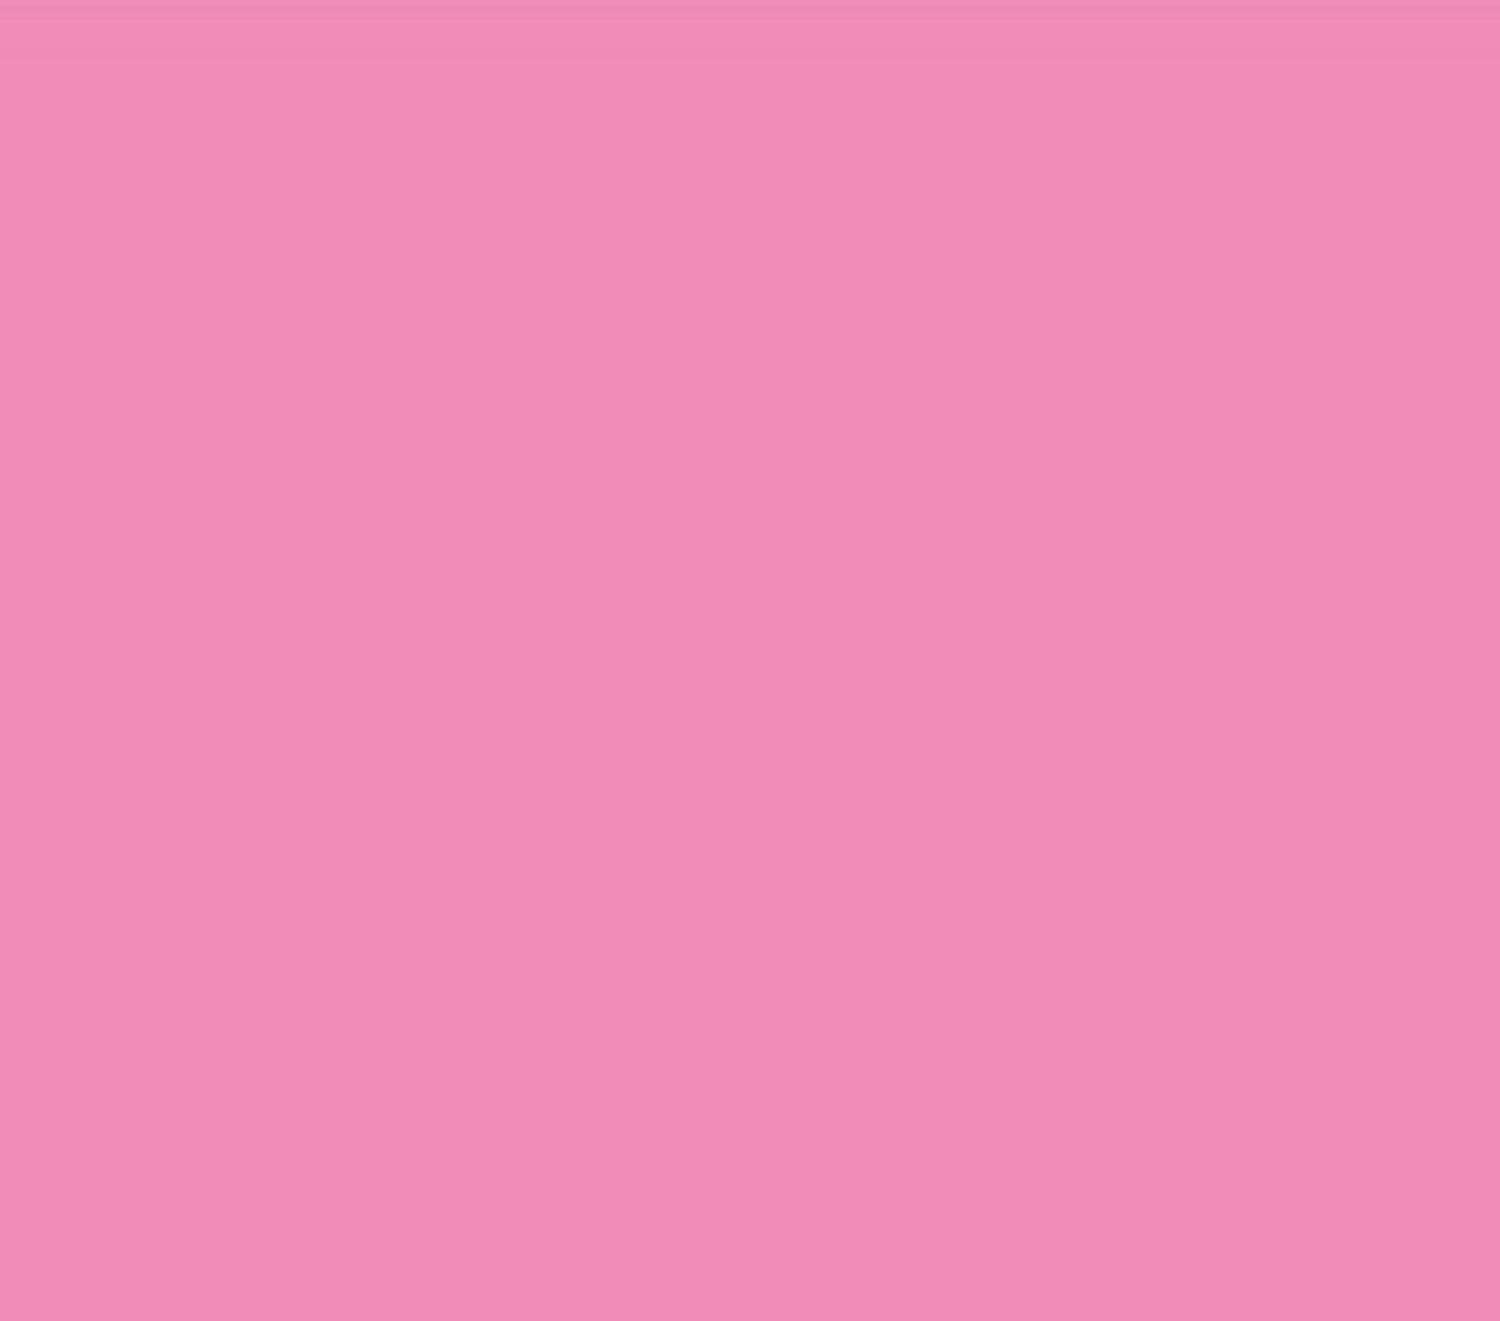 Size 12 x 5 each roll 045 Adhesive Backed Vinyl Sheets Oracal 651 Soft Pink